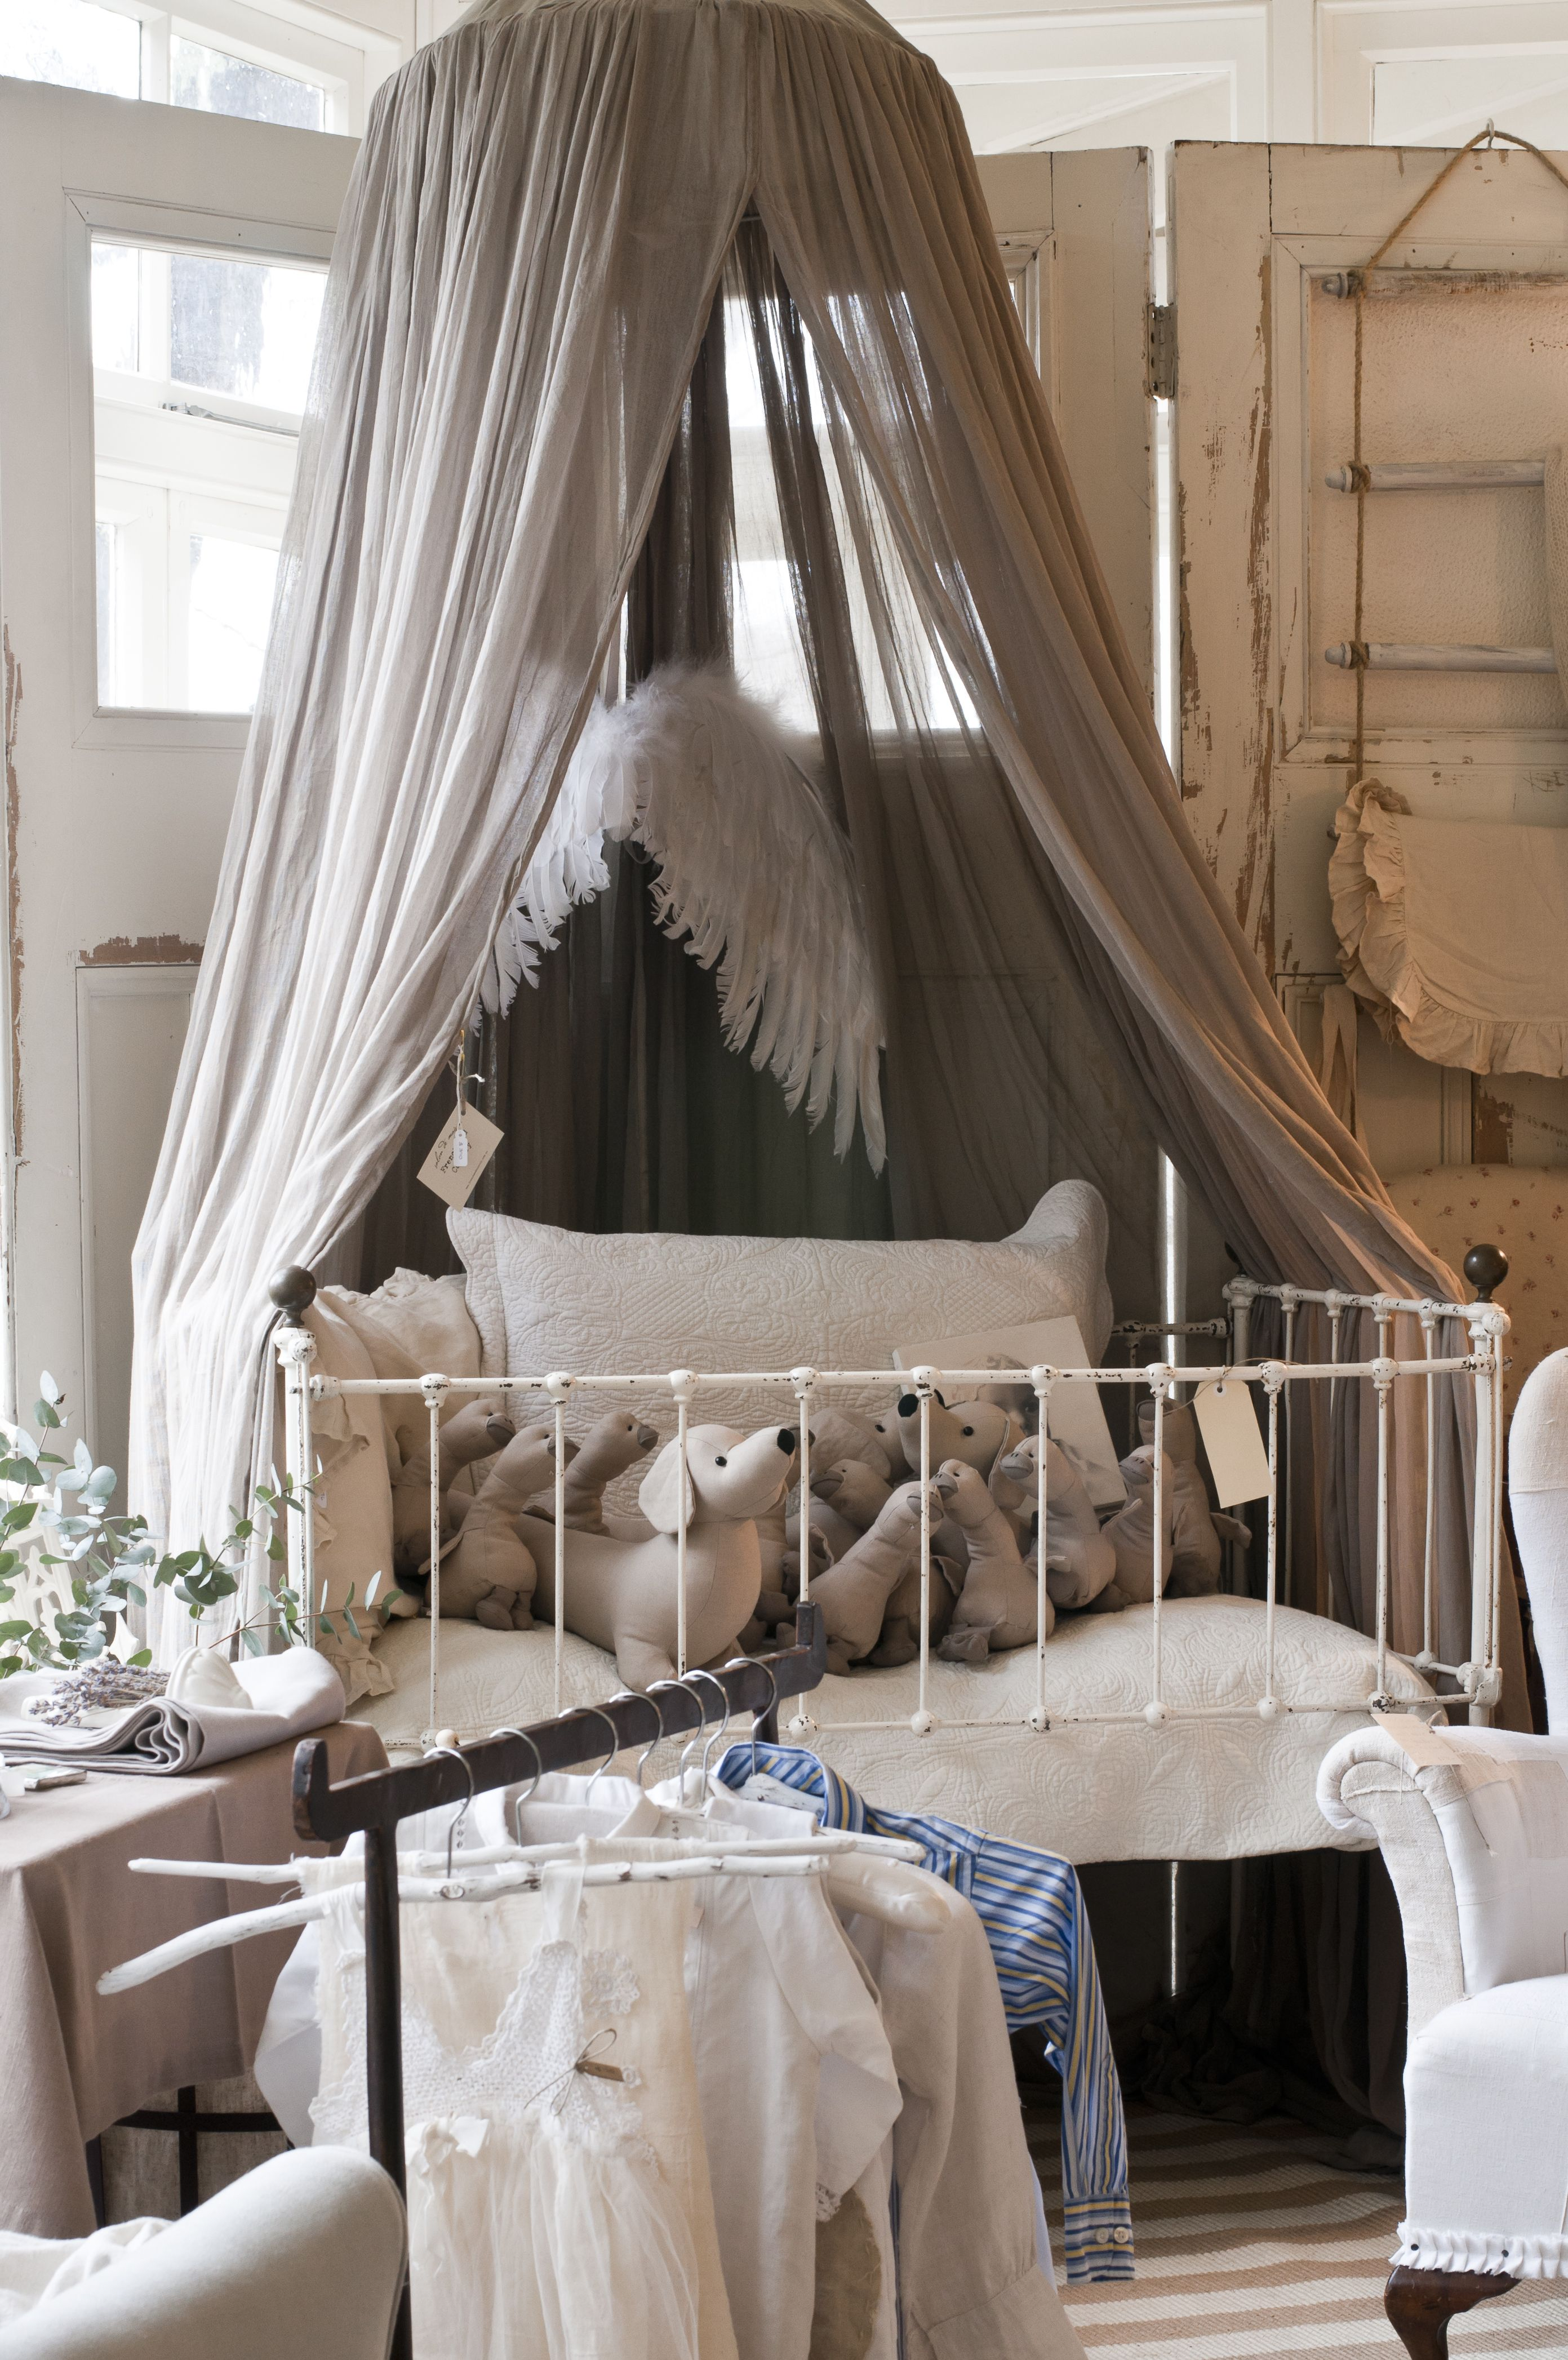 Italian dreamy mosquito net over vintage cot, French ...